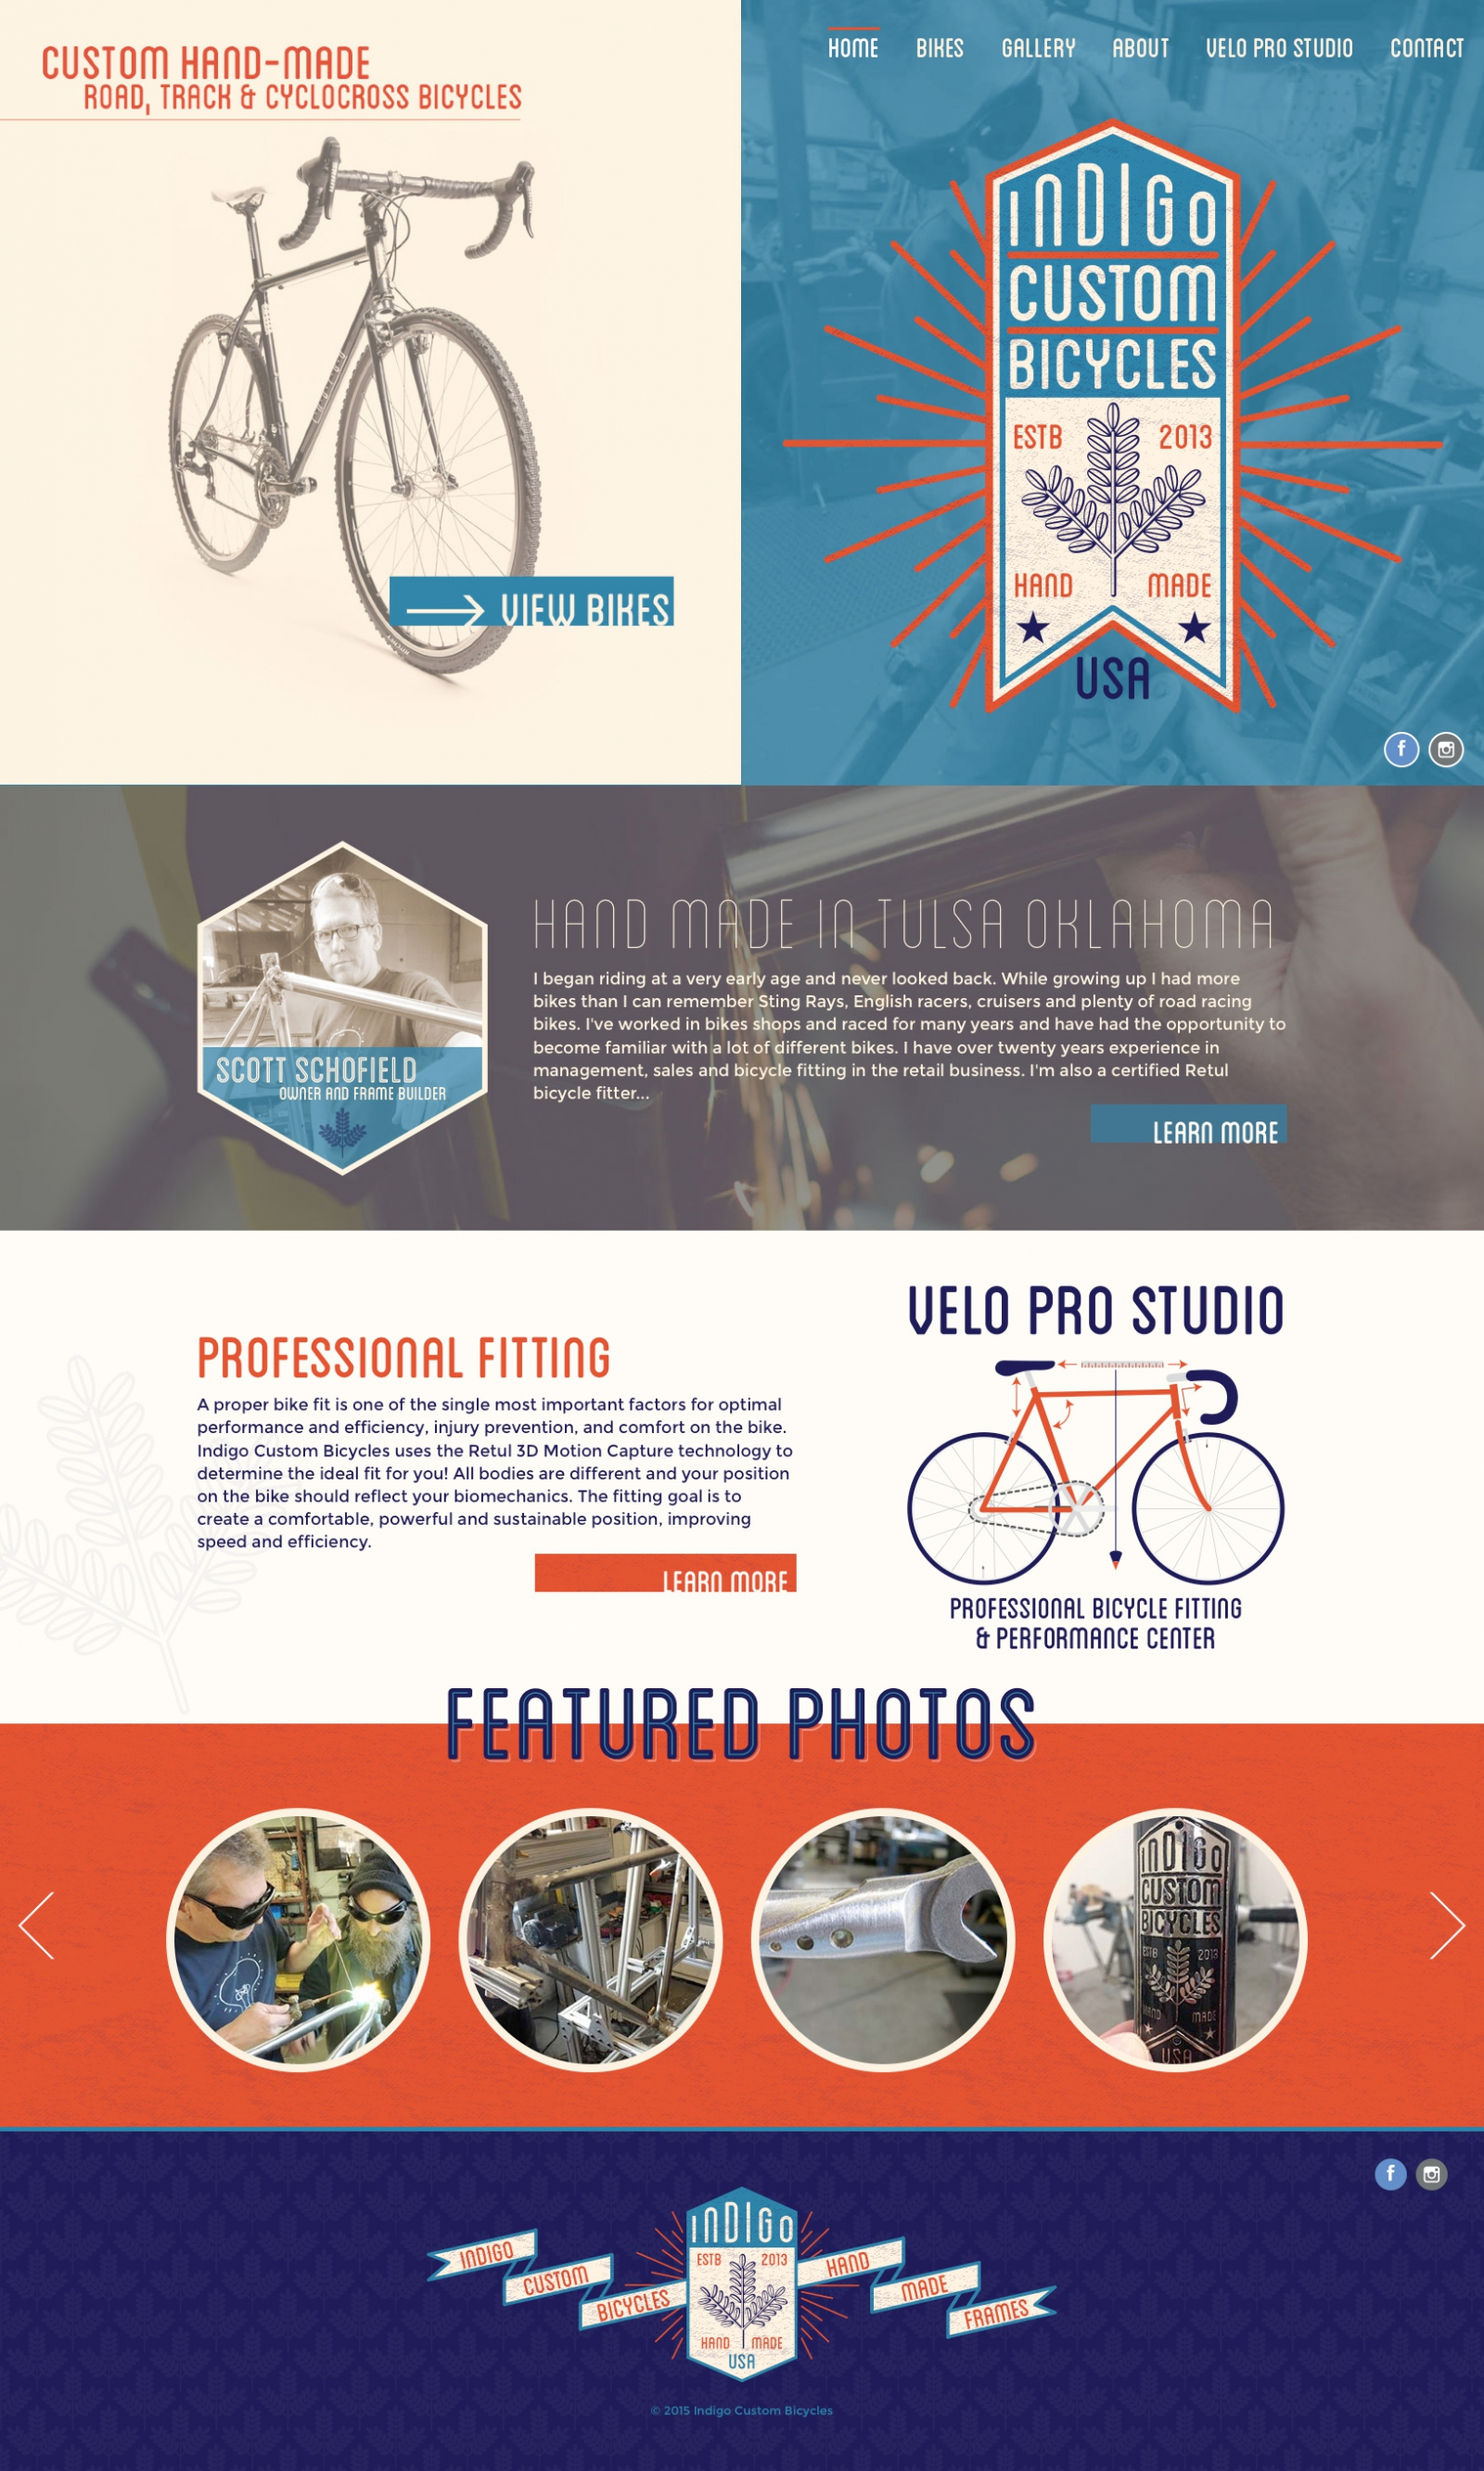 Homepage Screenshot of Indigo Custom Bicycles